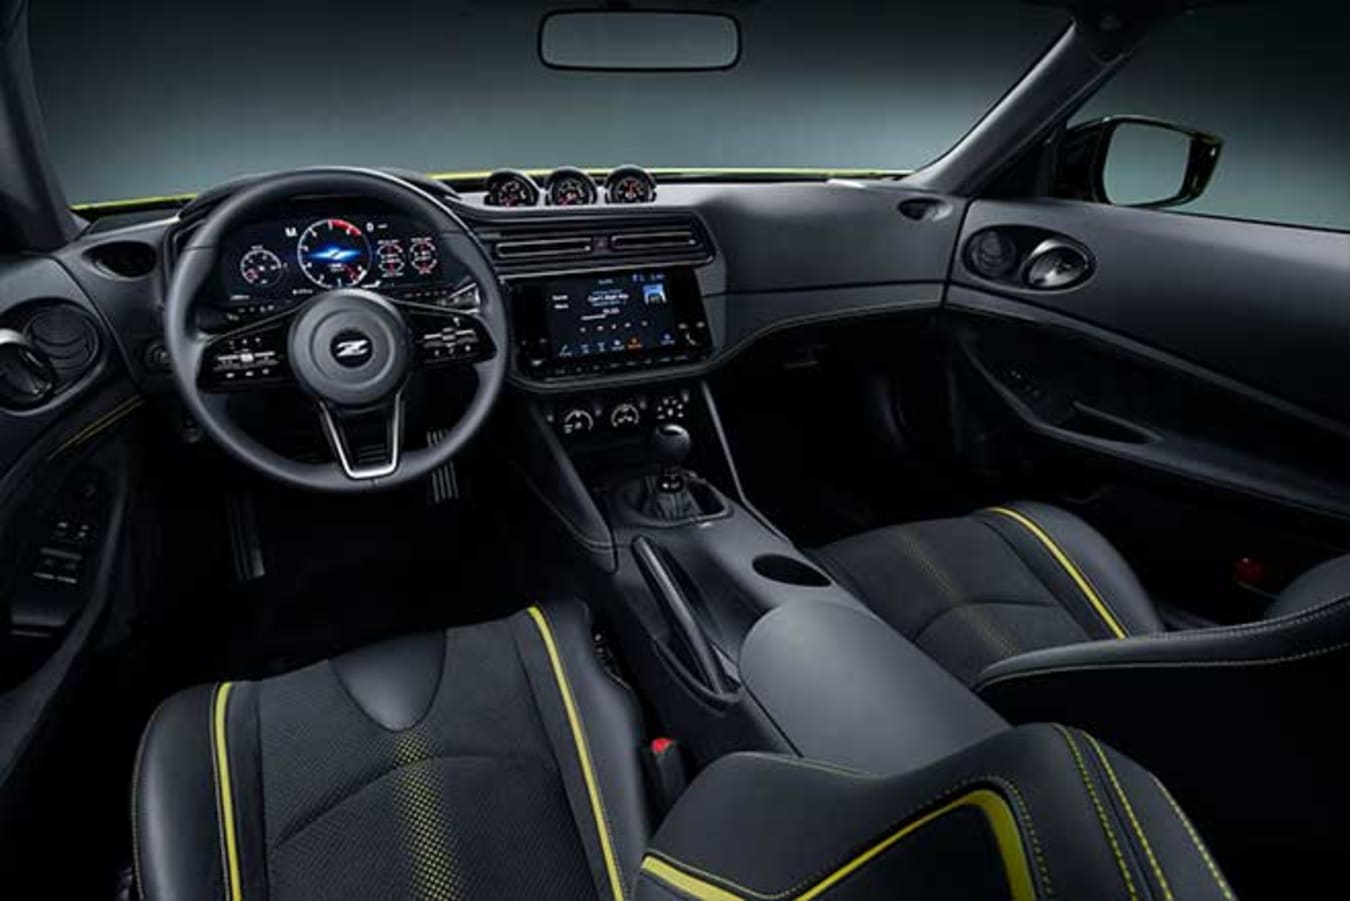 Nissan 400Z interior is a mix of classic touches with modern technology.